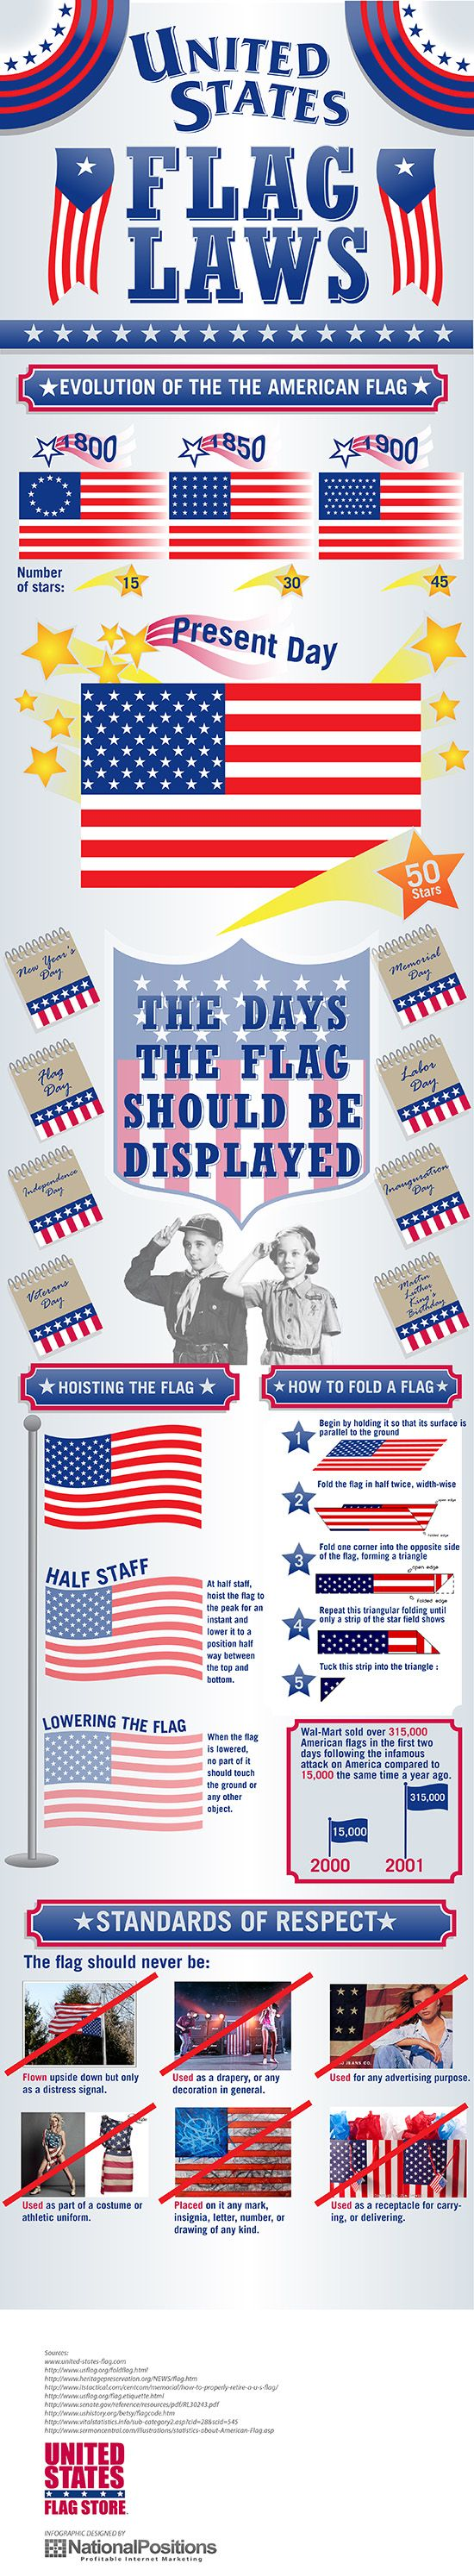 United States Flag Laws For Americans The Flag Is So Much A Part Of Our National Identity That There Are Laws Dictating Its Care And D Cub Scouts Flags